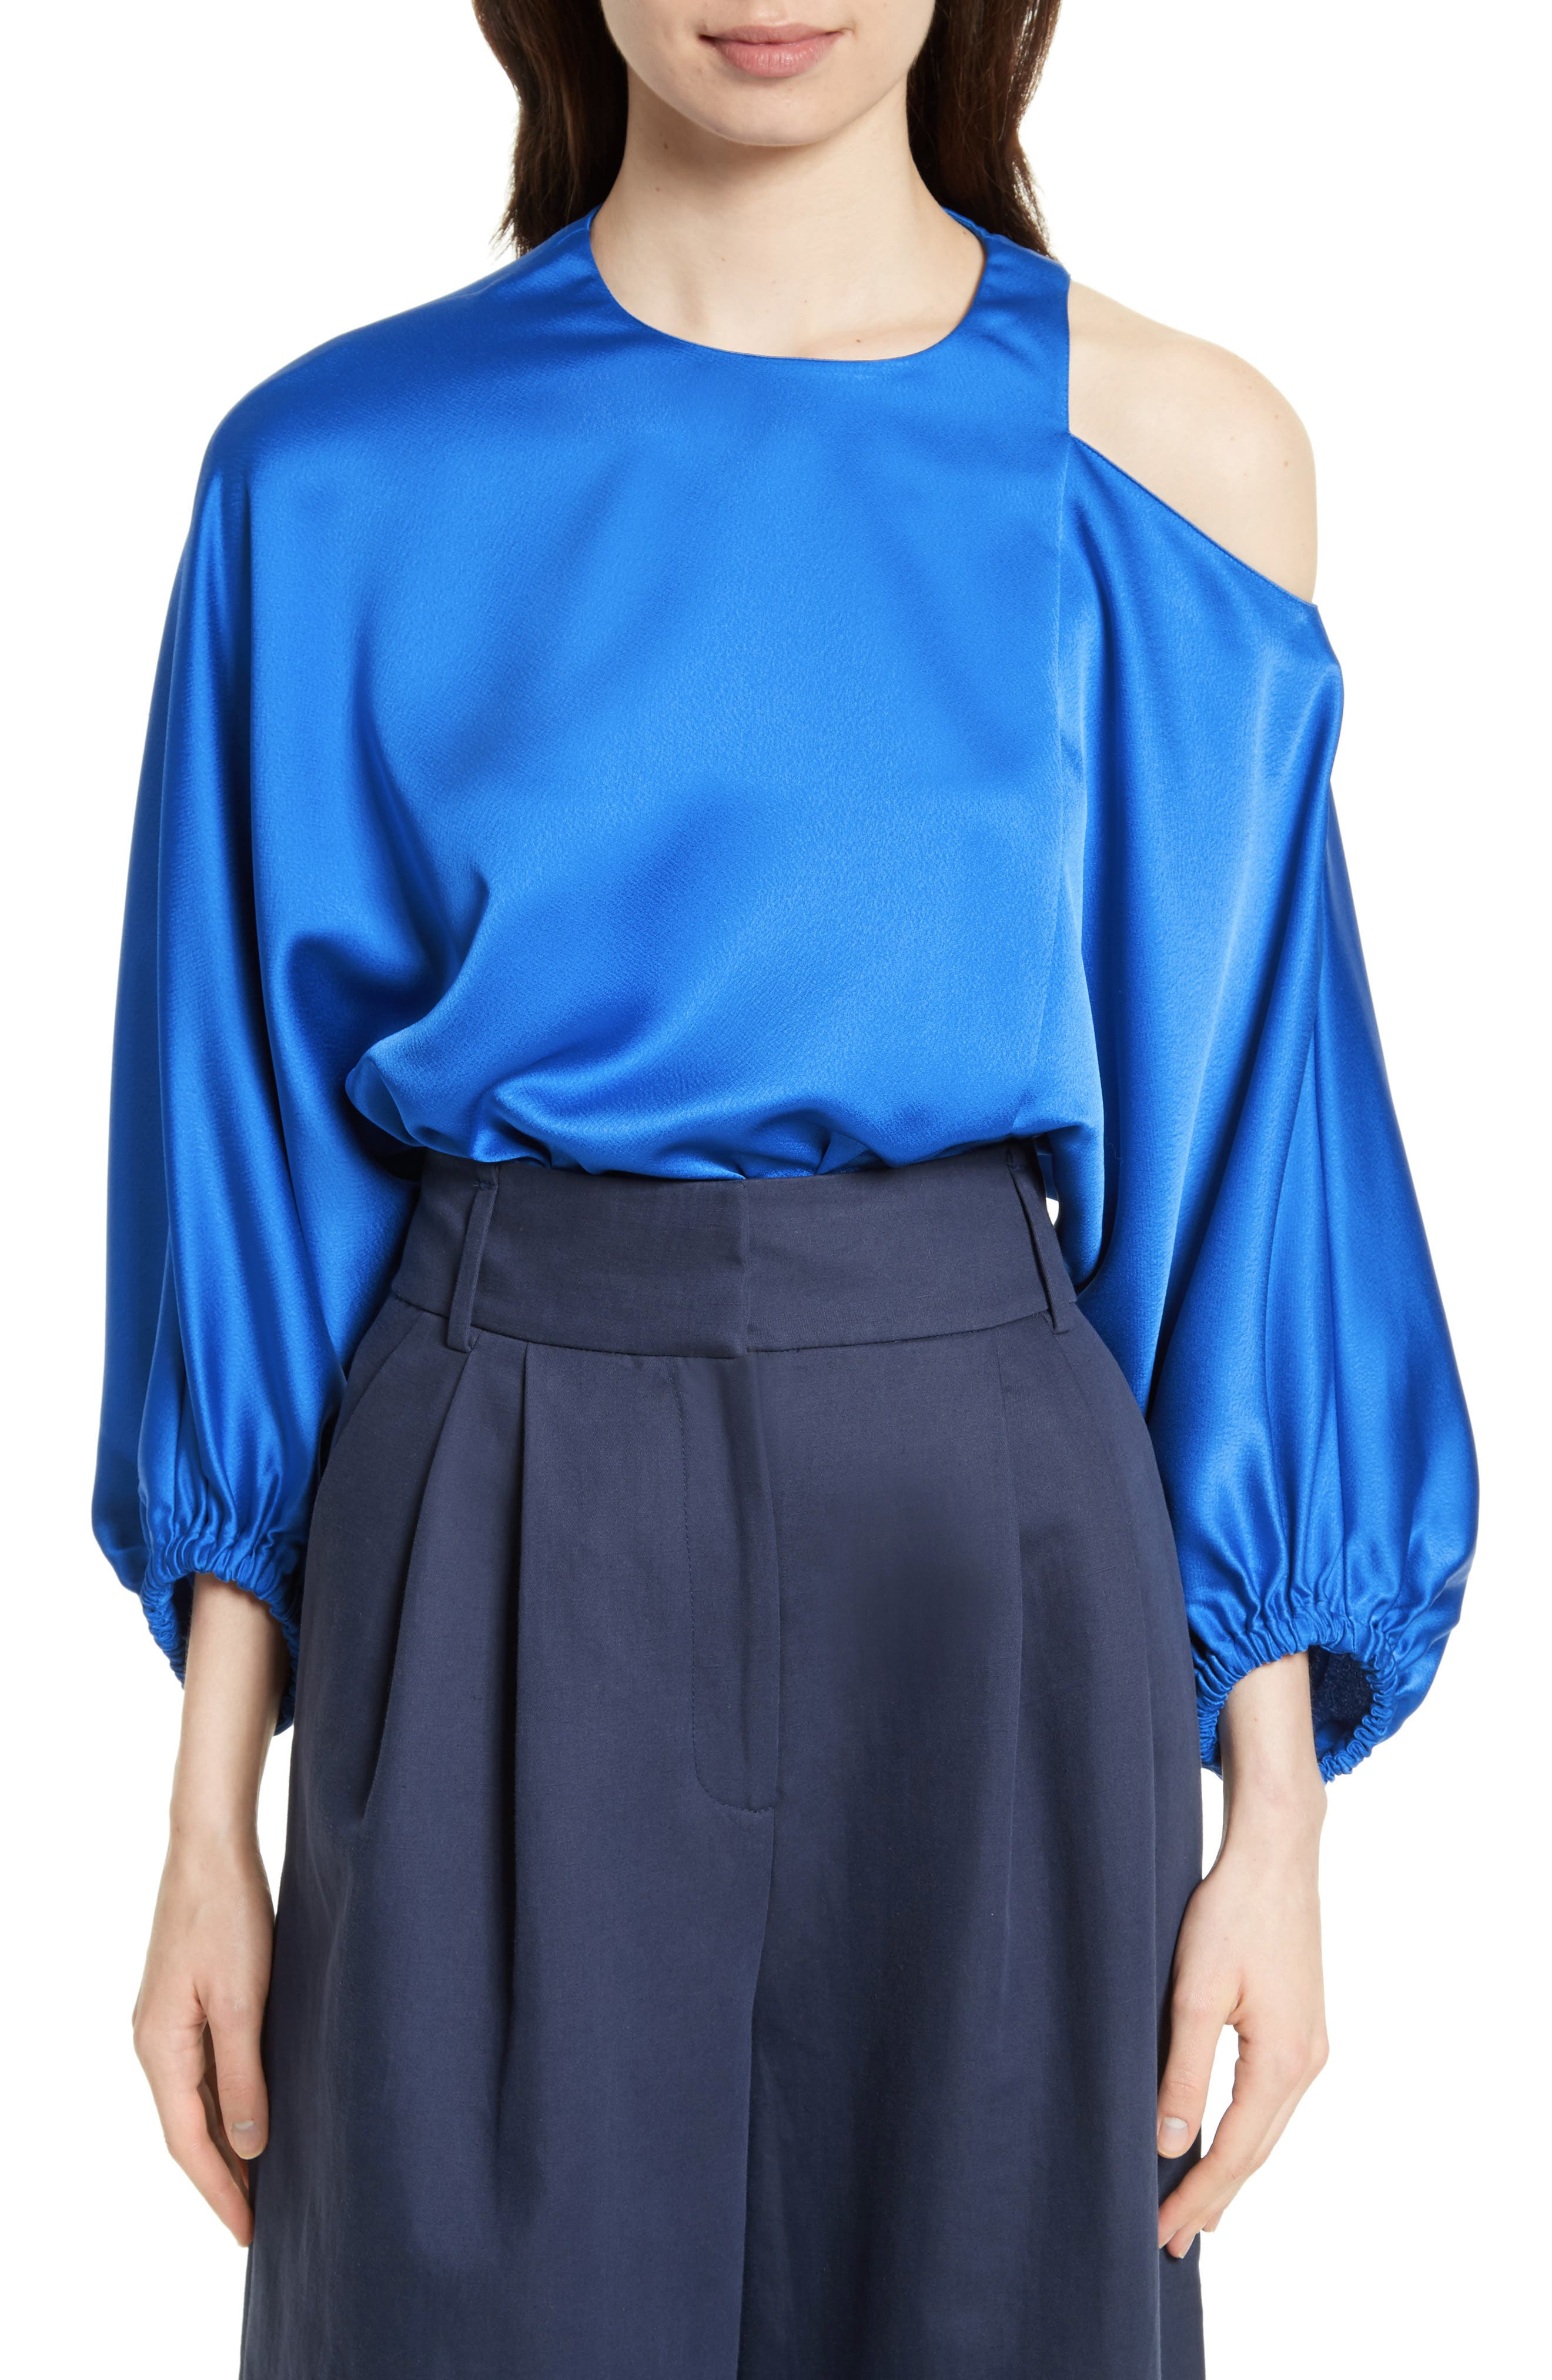 Tibi Woman Celestia Cutout Satin Top Bright Blue Size XS Tibi Shop Offer For Sale Clearance Inexpensive New Styles 62JwJyYp